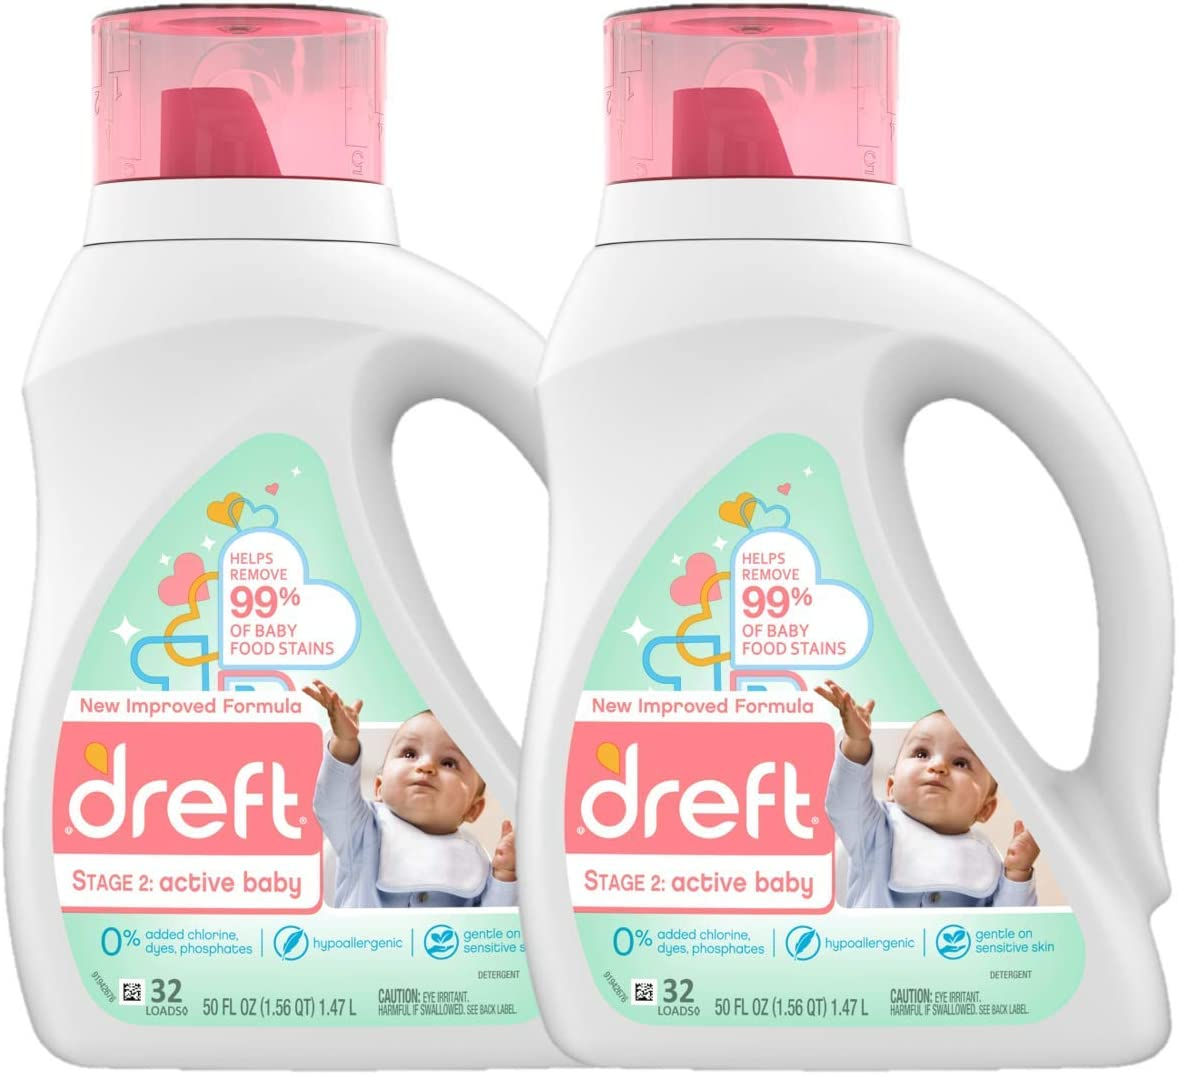 Dreft Stage 2: Active Hypoallergenic Liquid Baby Laundry Detergent for Baby, Newborn, or Infant, 50 Ounces(32 Loads), 2 Count (Packaging May Vary): Health & Personal Care